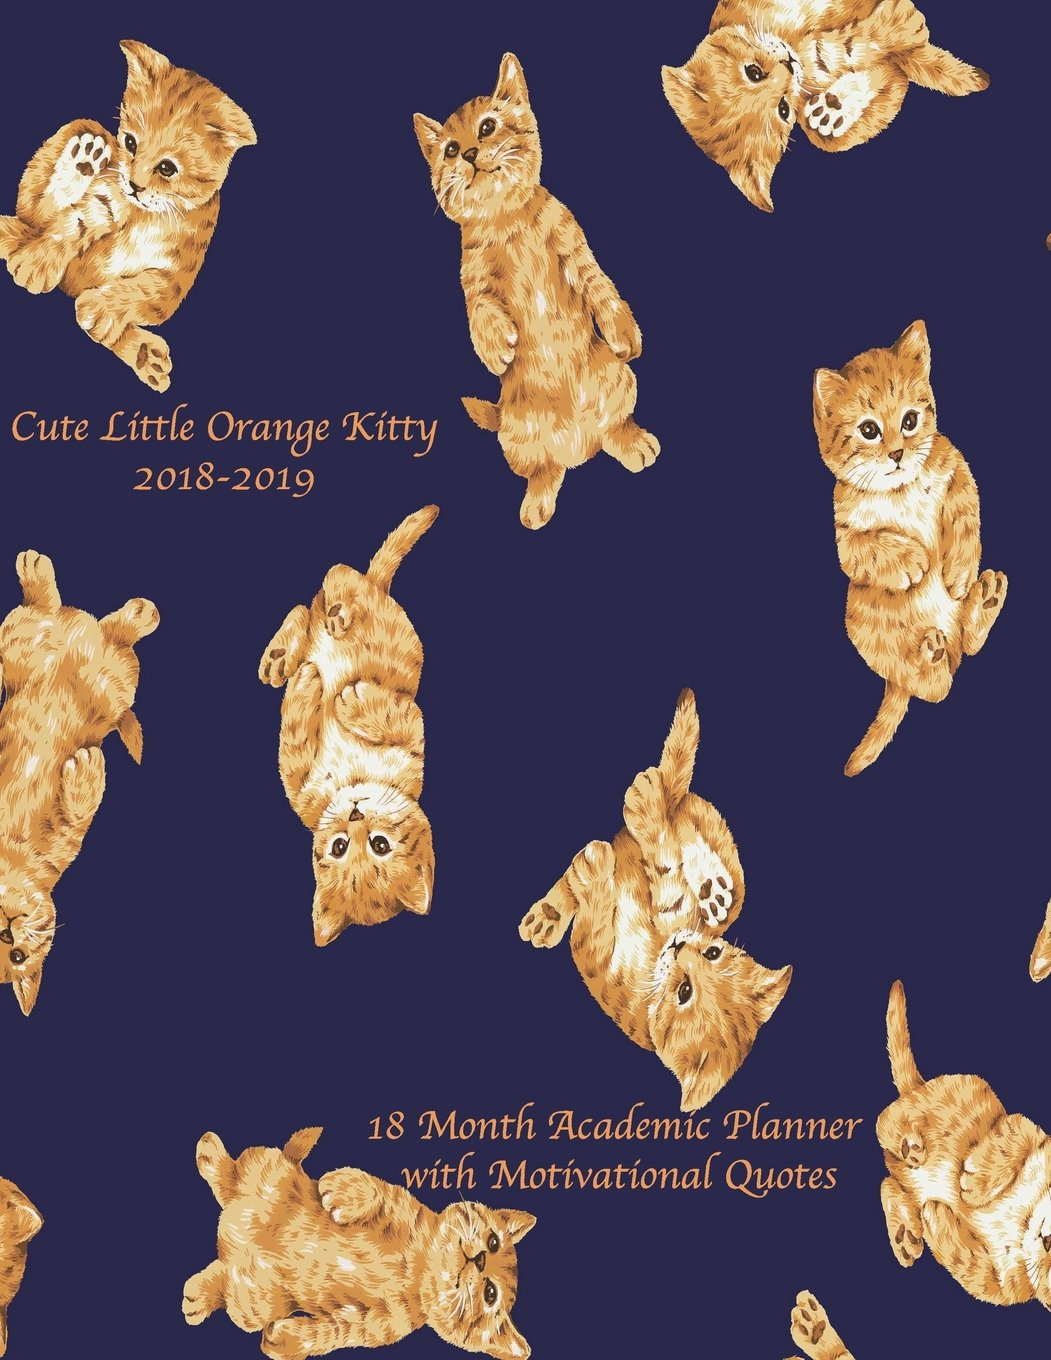 Cute Little Orange Kitty 2018-2019 18 Month Academic Planner: July 2018 To December 2019 Weekly and Monthly Large 8.5x11 Organizer with Motivational ... Motivational Quotes Planners) (Volume 35) Text fb2 ebook